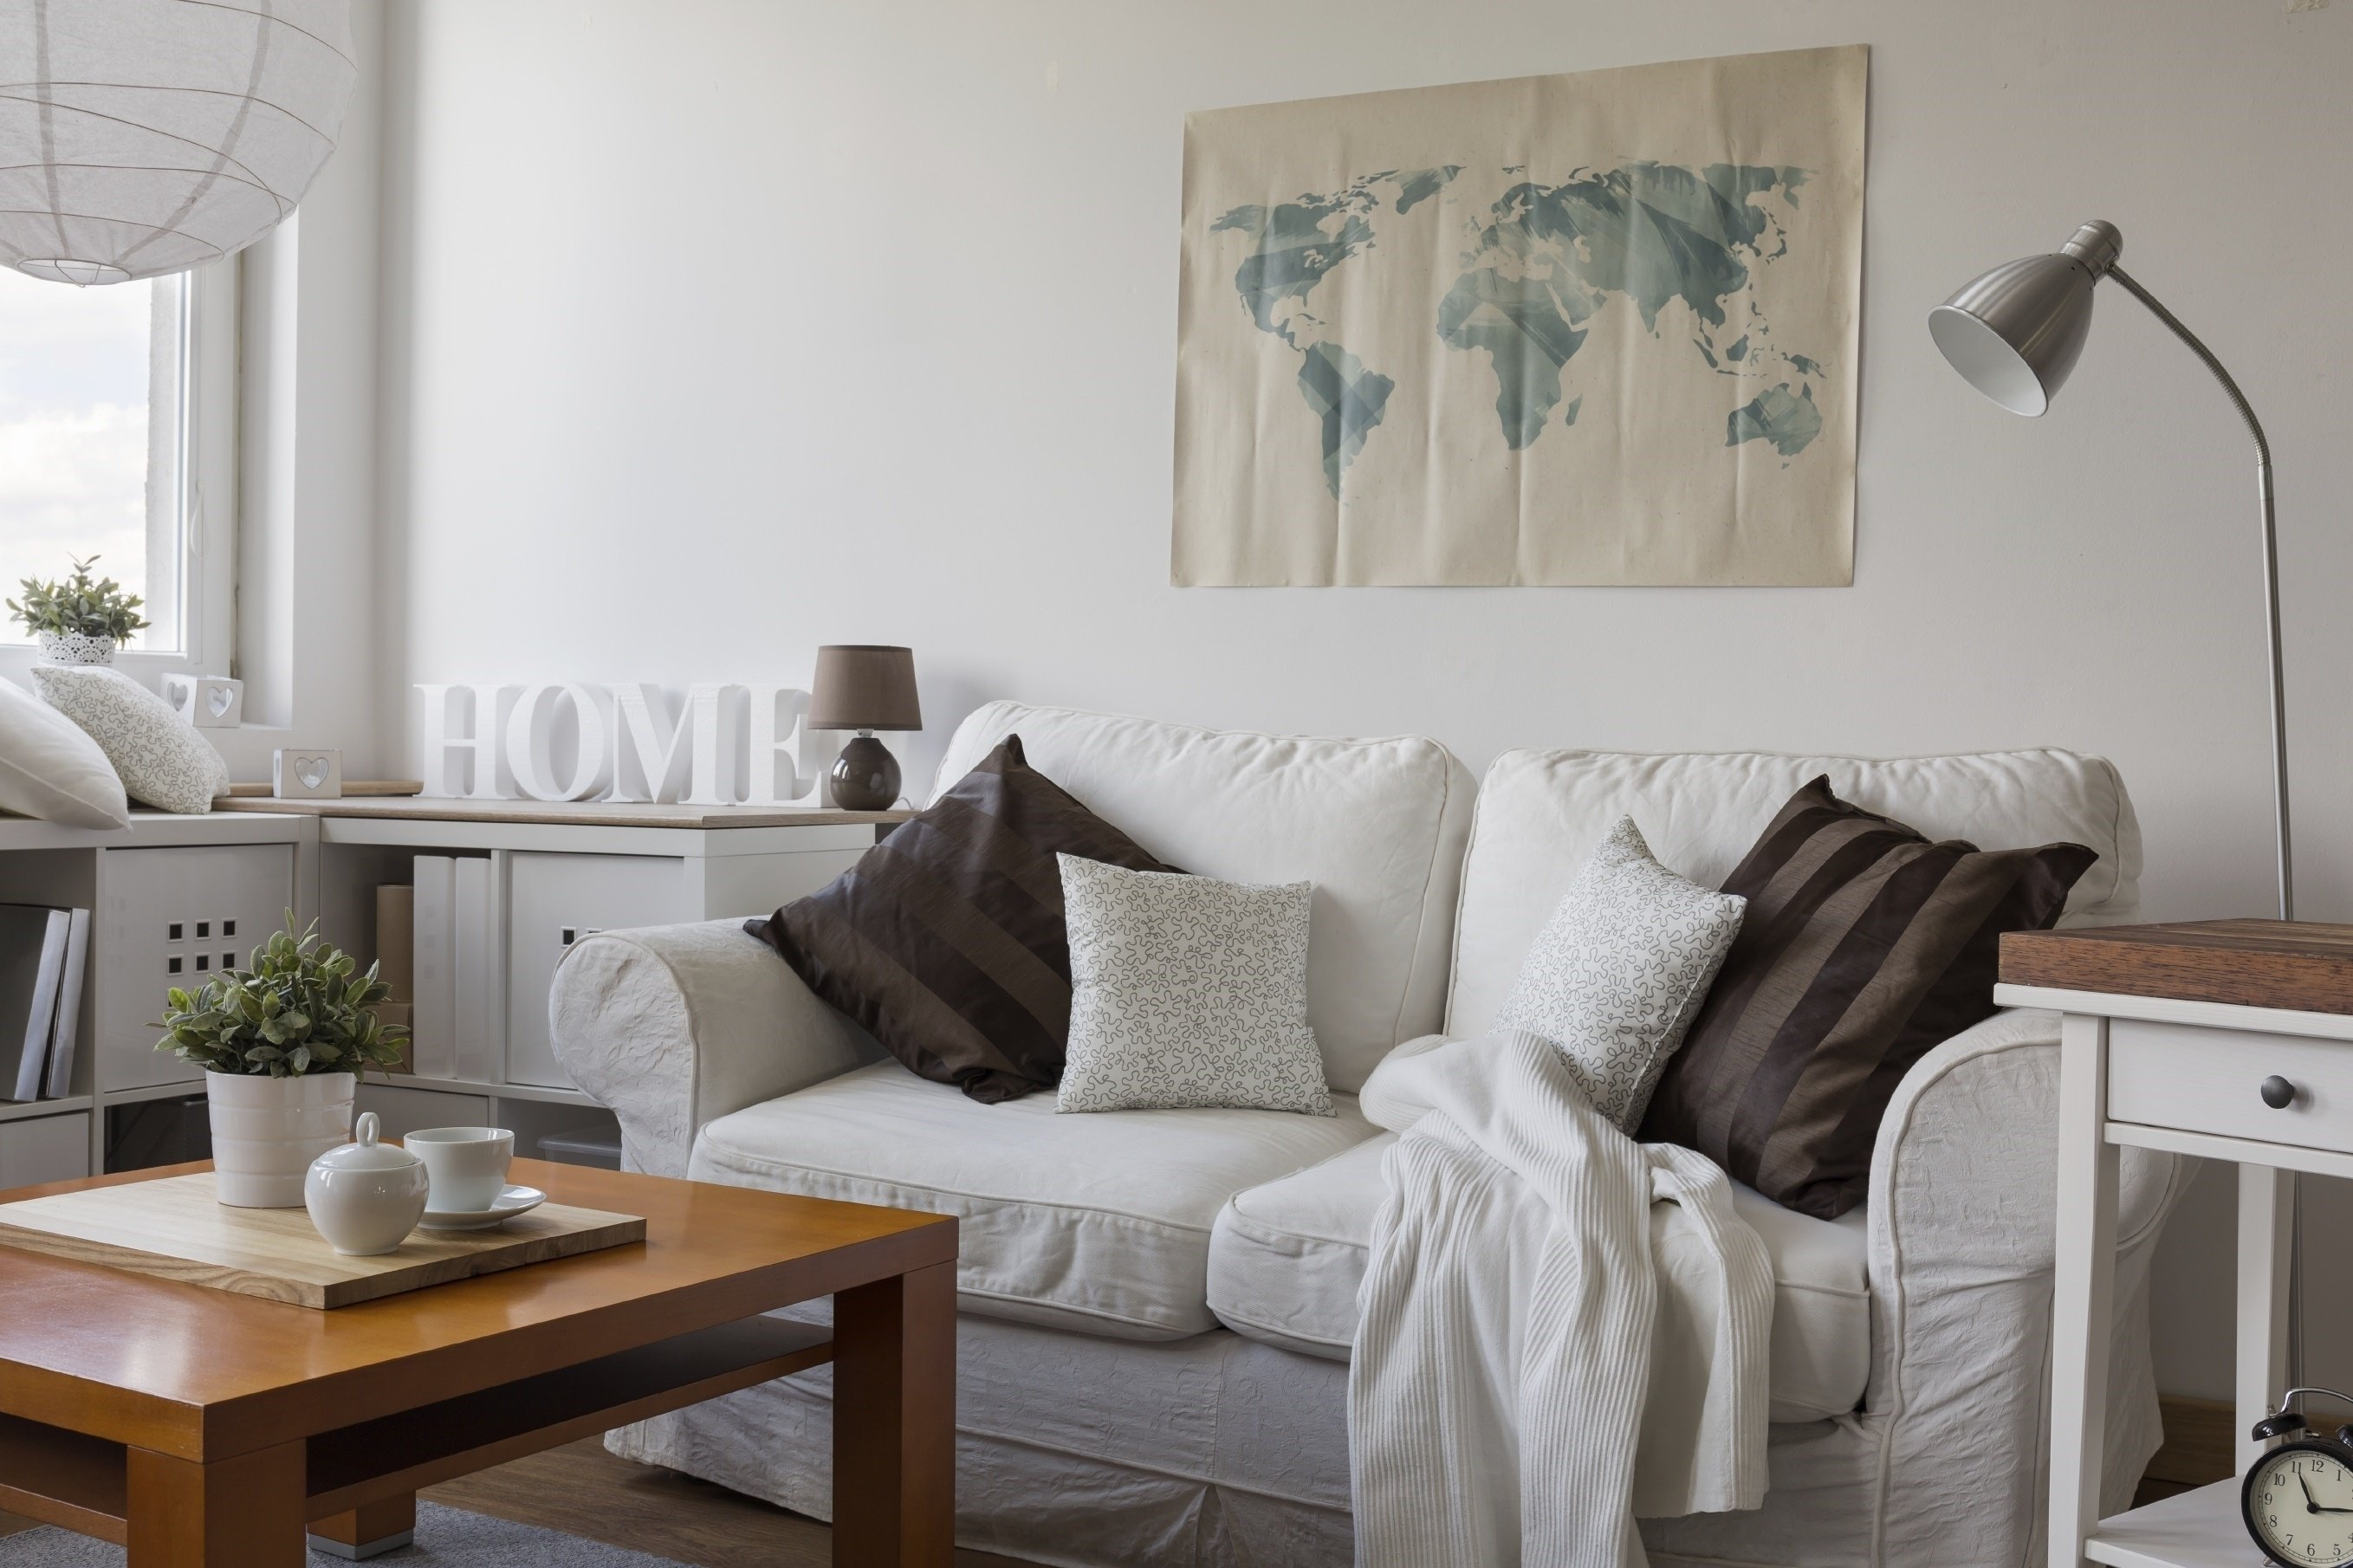 10 Pretty Cheap Decorating Ideas For Apartments cheap decorating ideas for apartments lovely blog 2021